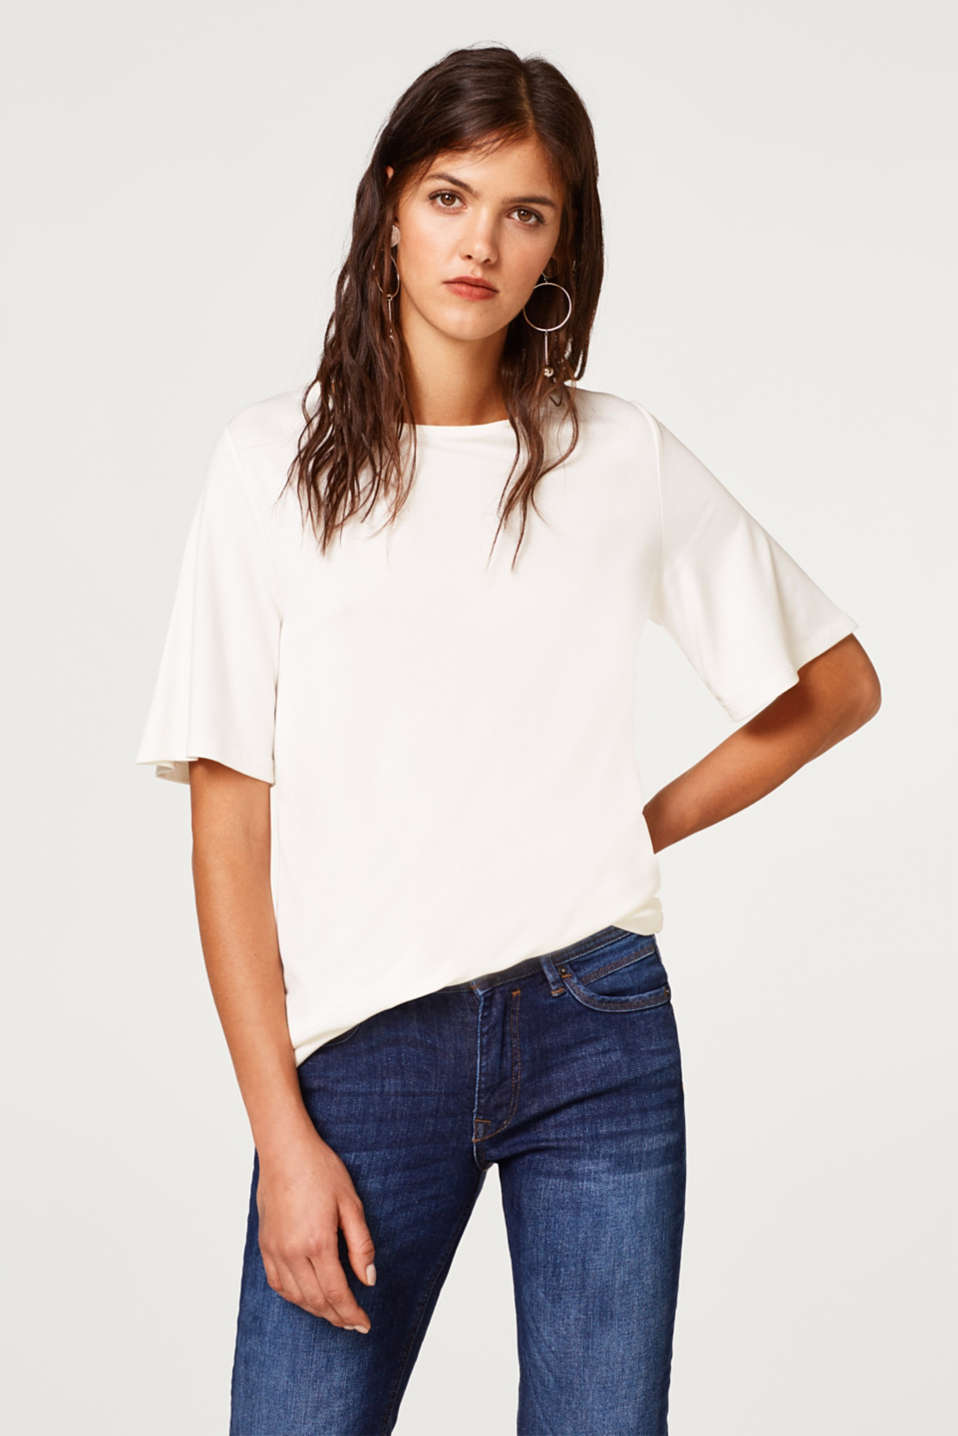 Esprit - T-shirt with a cut-out at the back